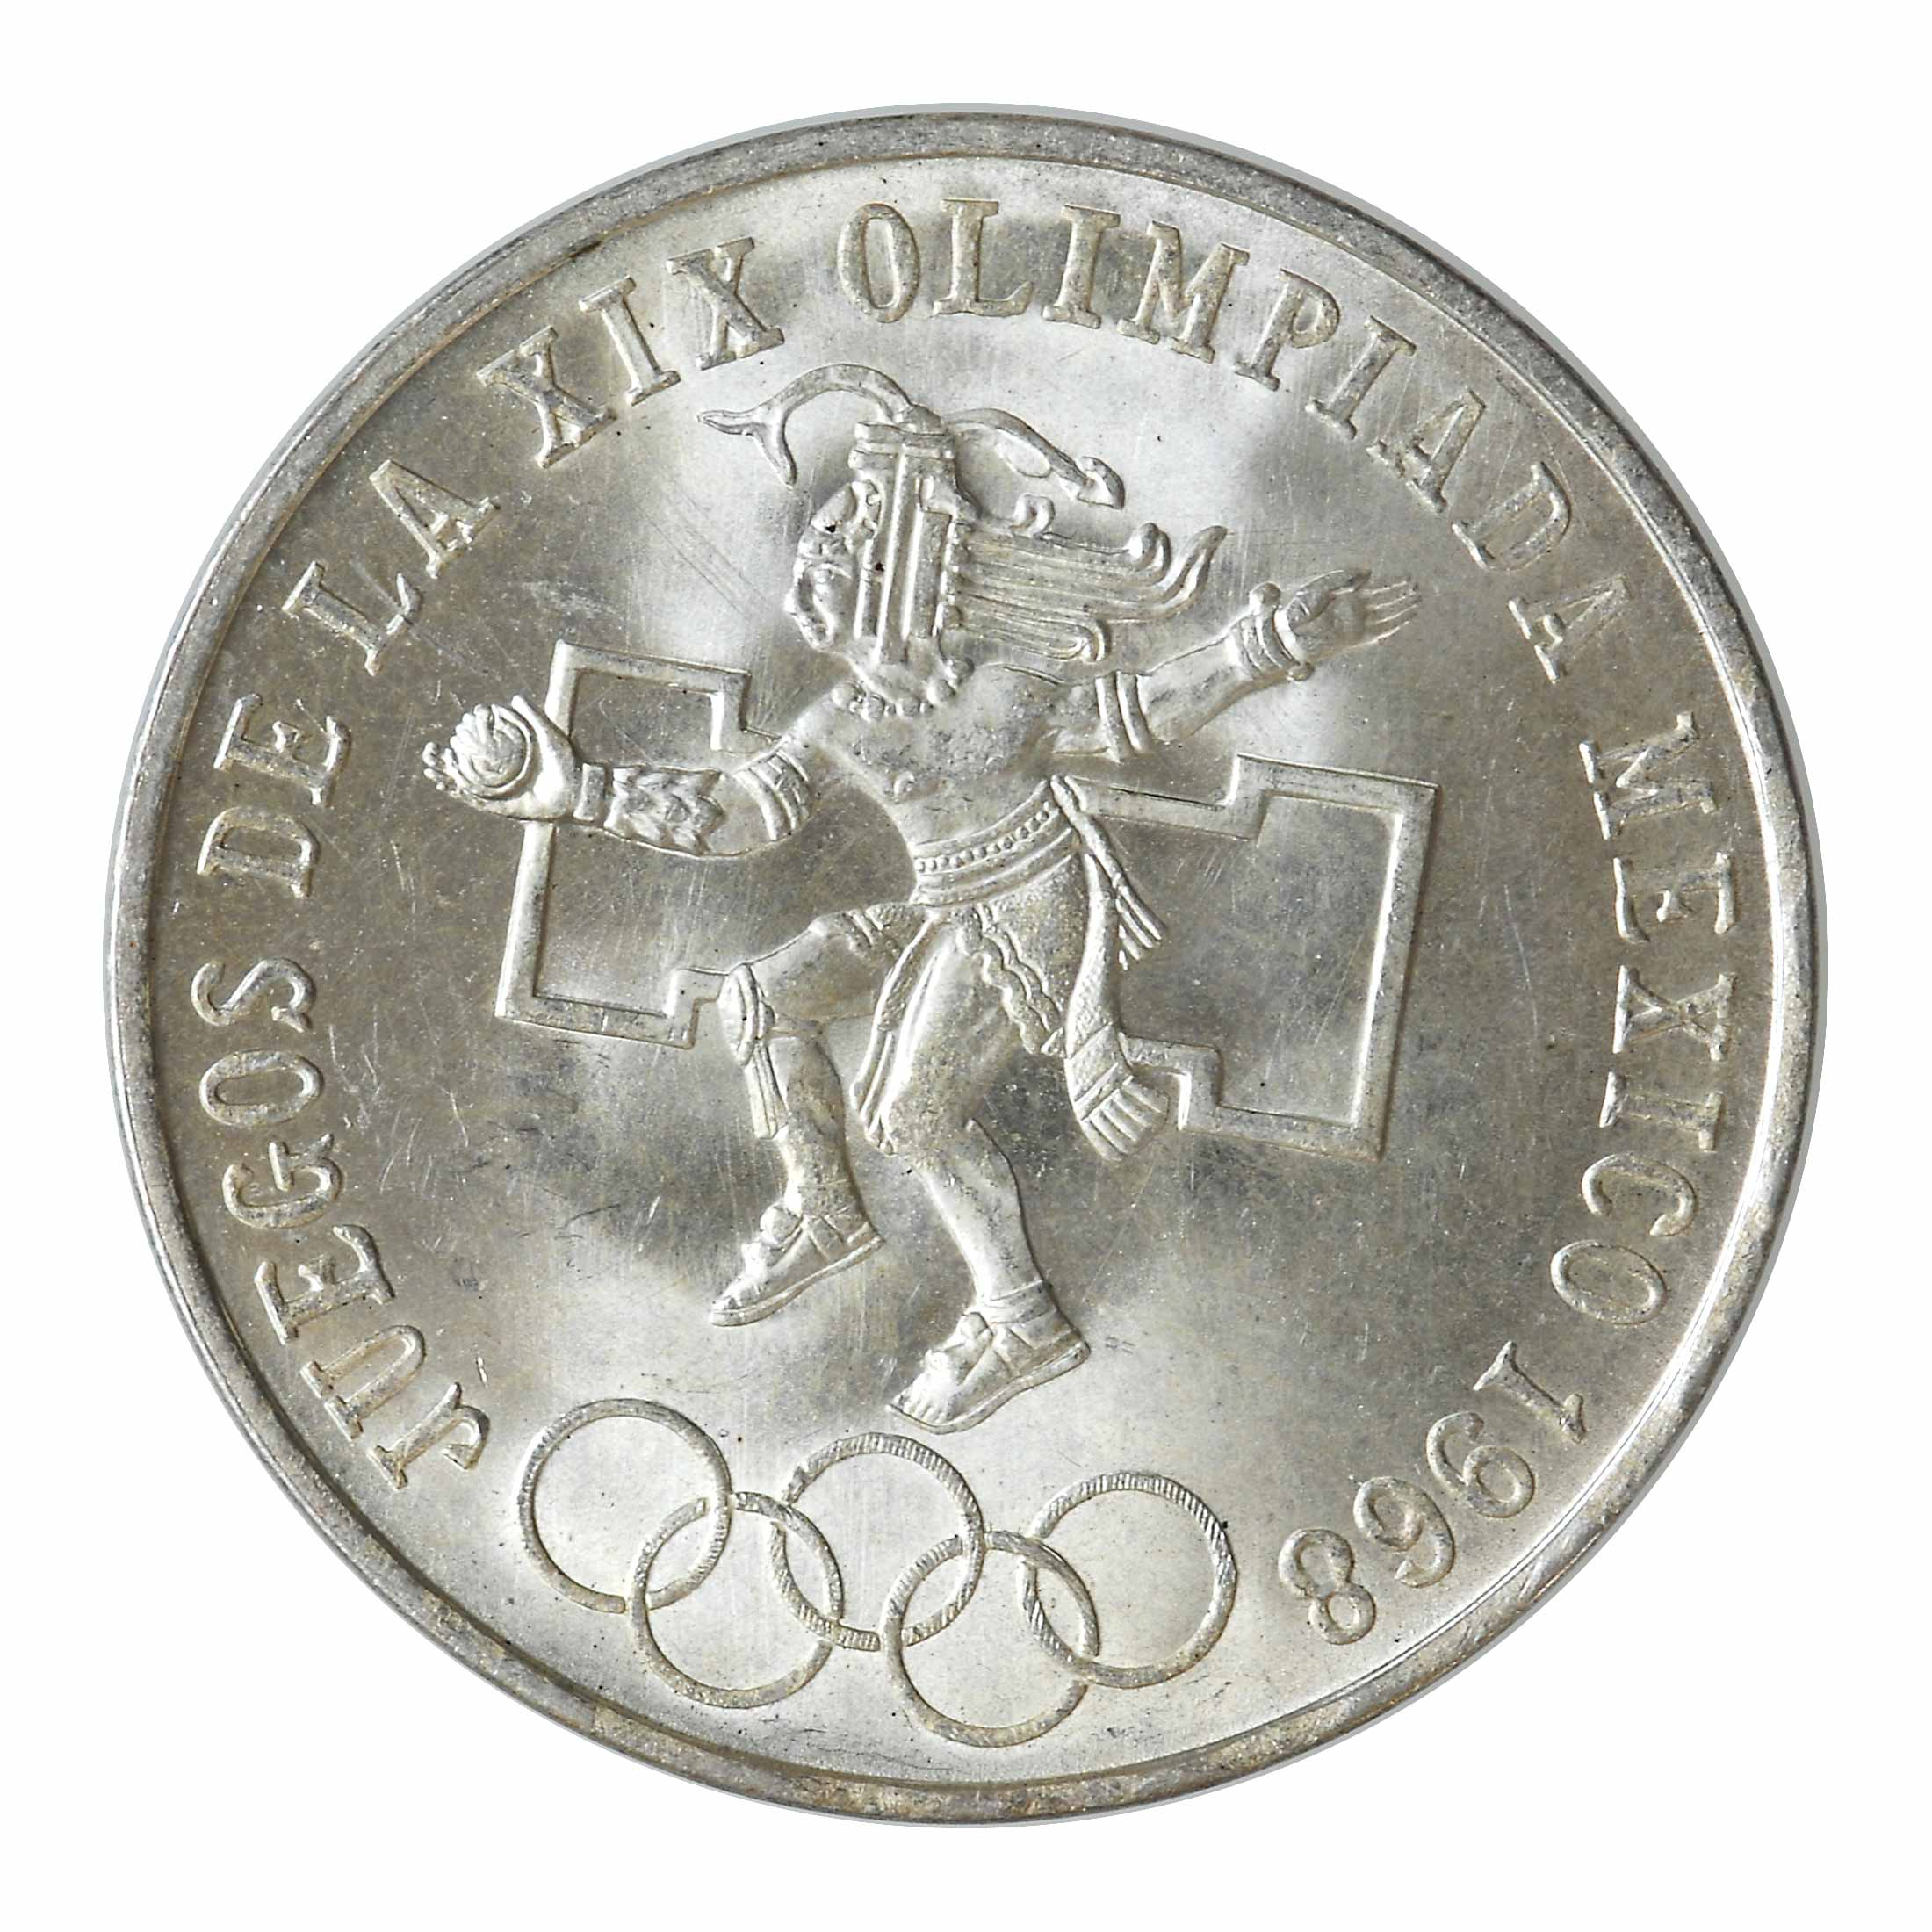 mexico-silver-olympics-1968-obverse-1305-2